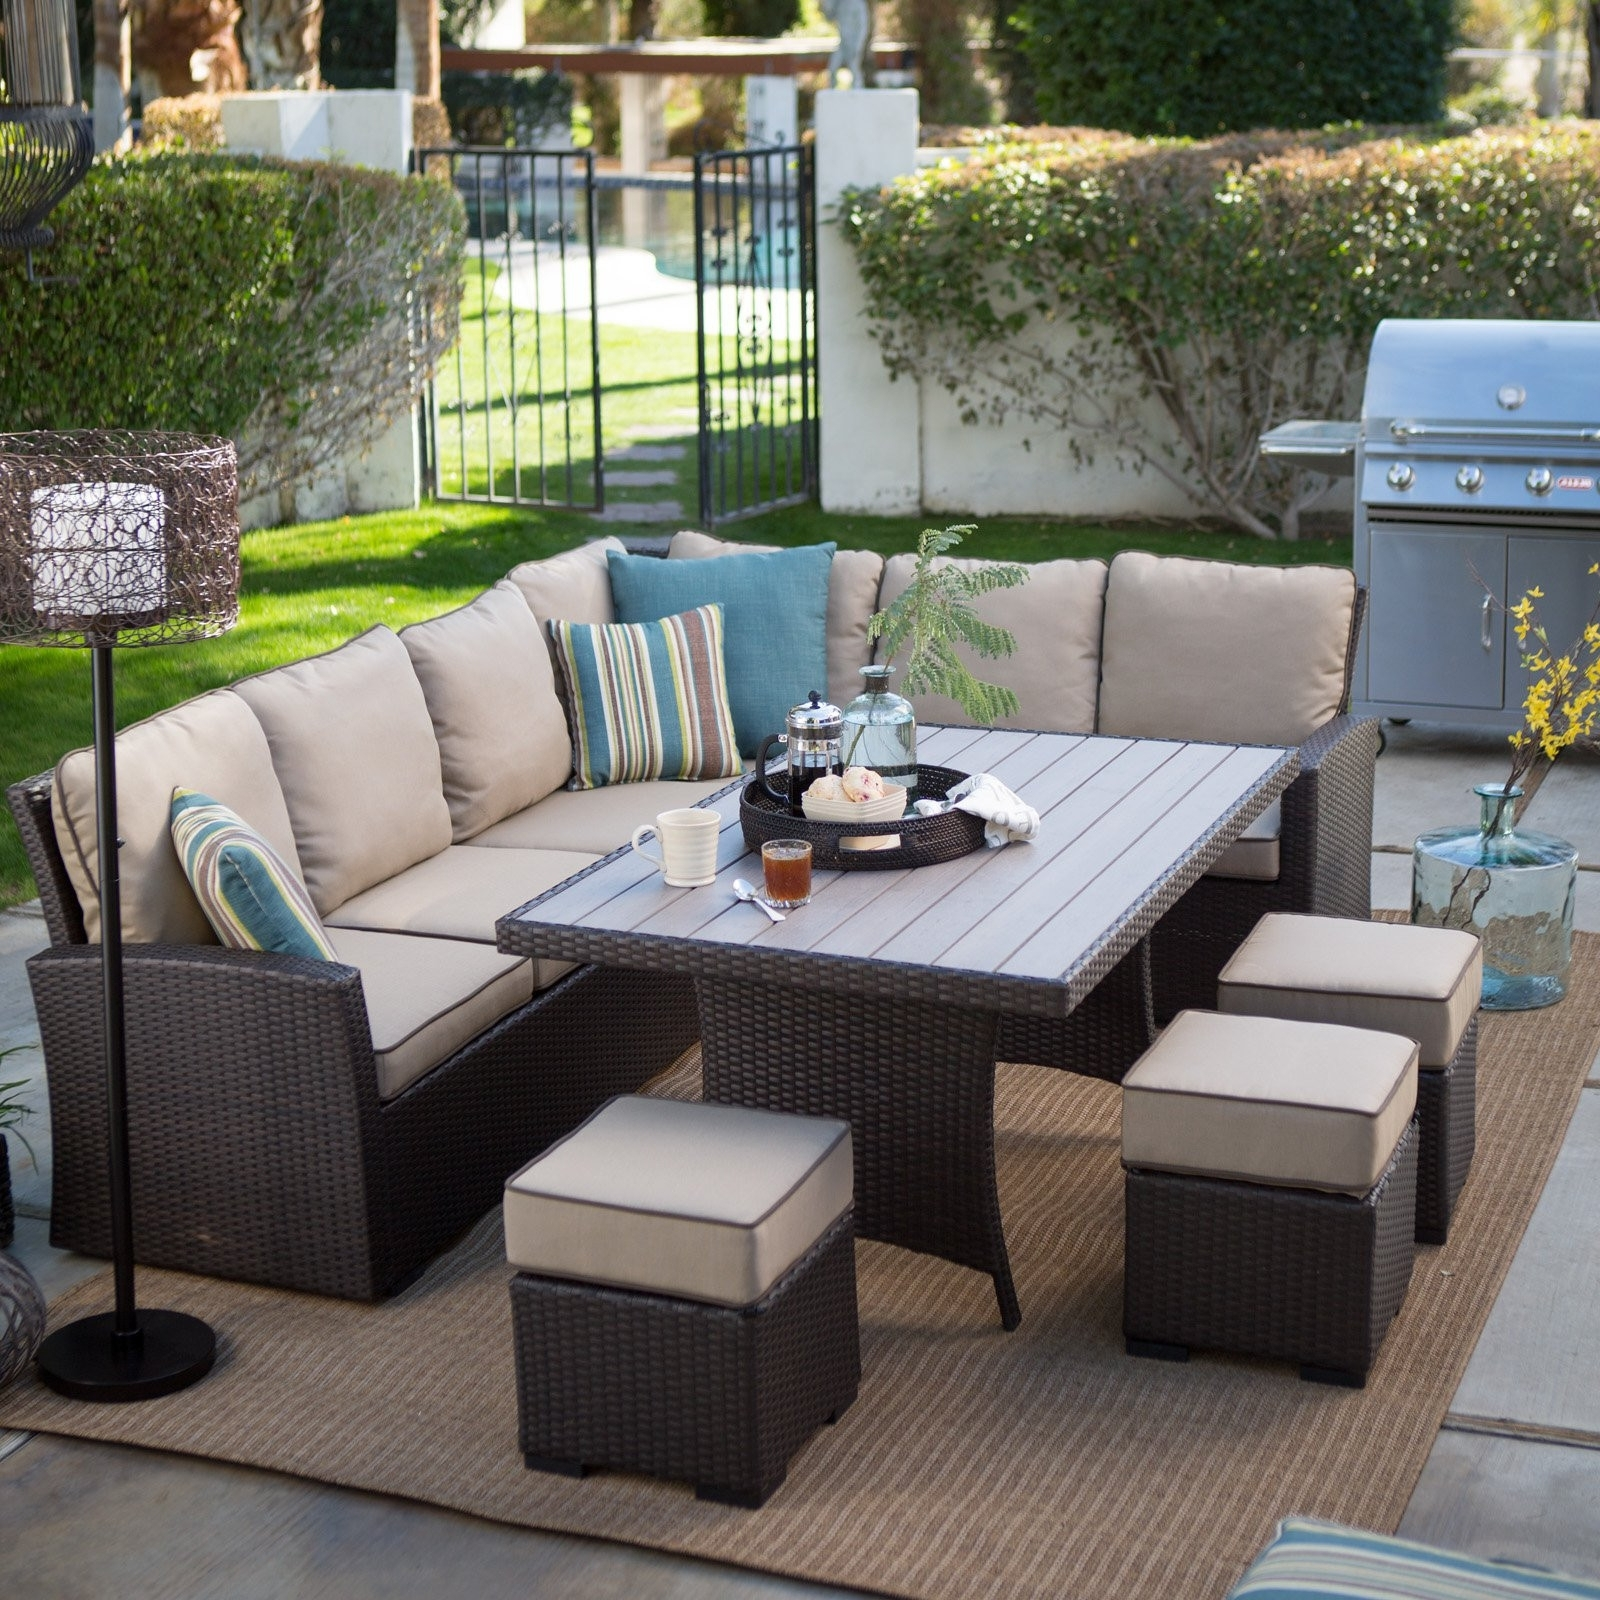 Small Patio Conversation Sets Regarding Well Liked 30 Fresh Small Outdoor Furniture Set Ideas – Onionskeen (View 15 of 20)